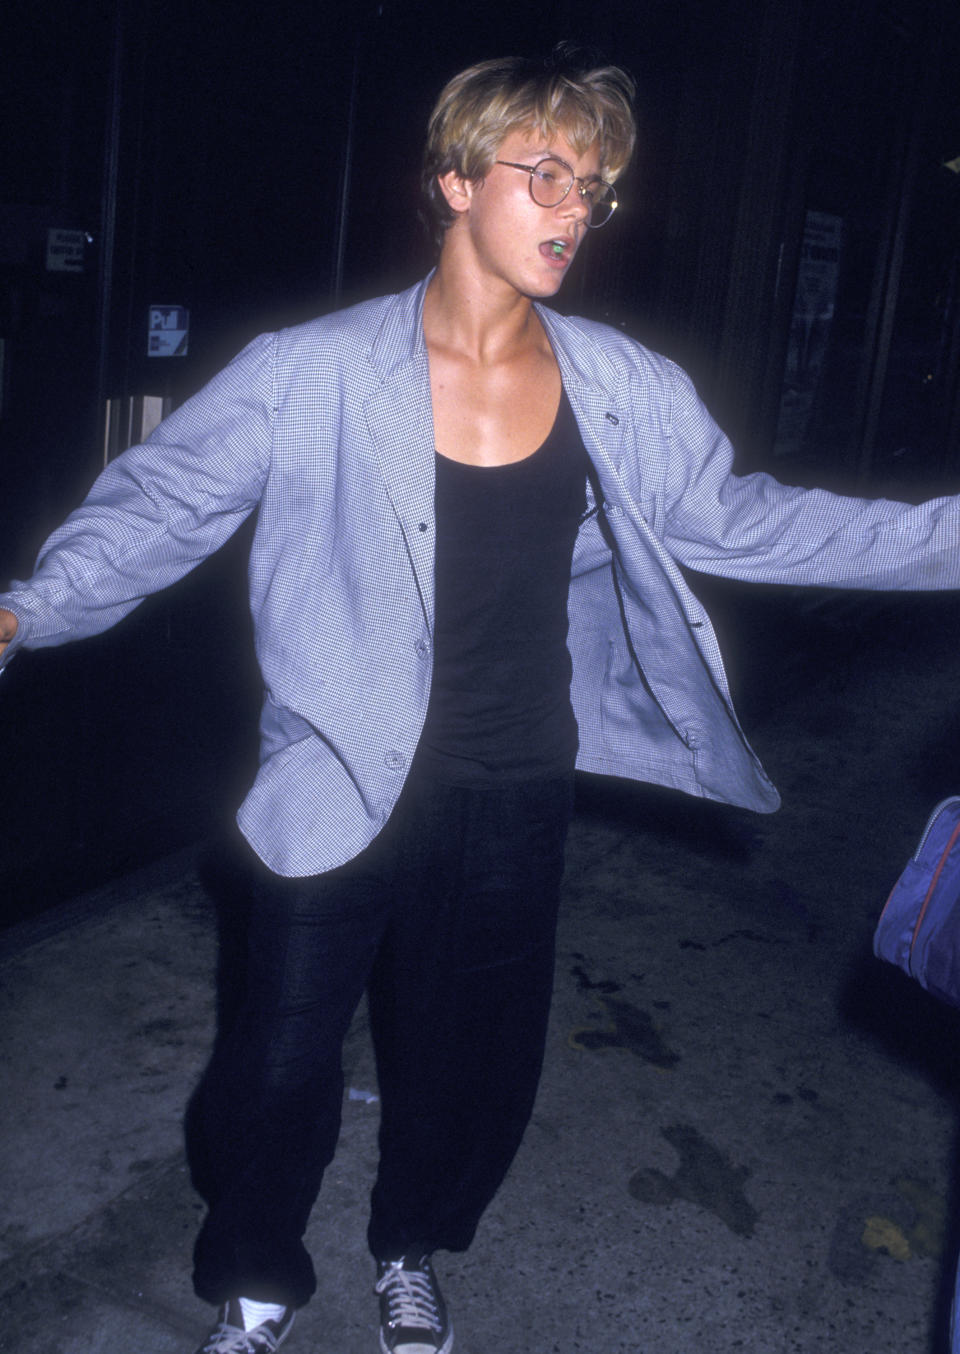 """NEW YORK CITY - AUGUST 3: Actor River Phoenix films """"Running on Empty"""" on August 3, 1987 in New York City. (Photo by Ron Galella, Ltd./Ron Galella Collection via Getty Images)"""